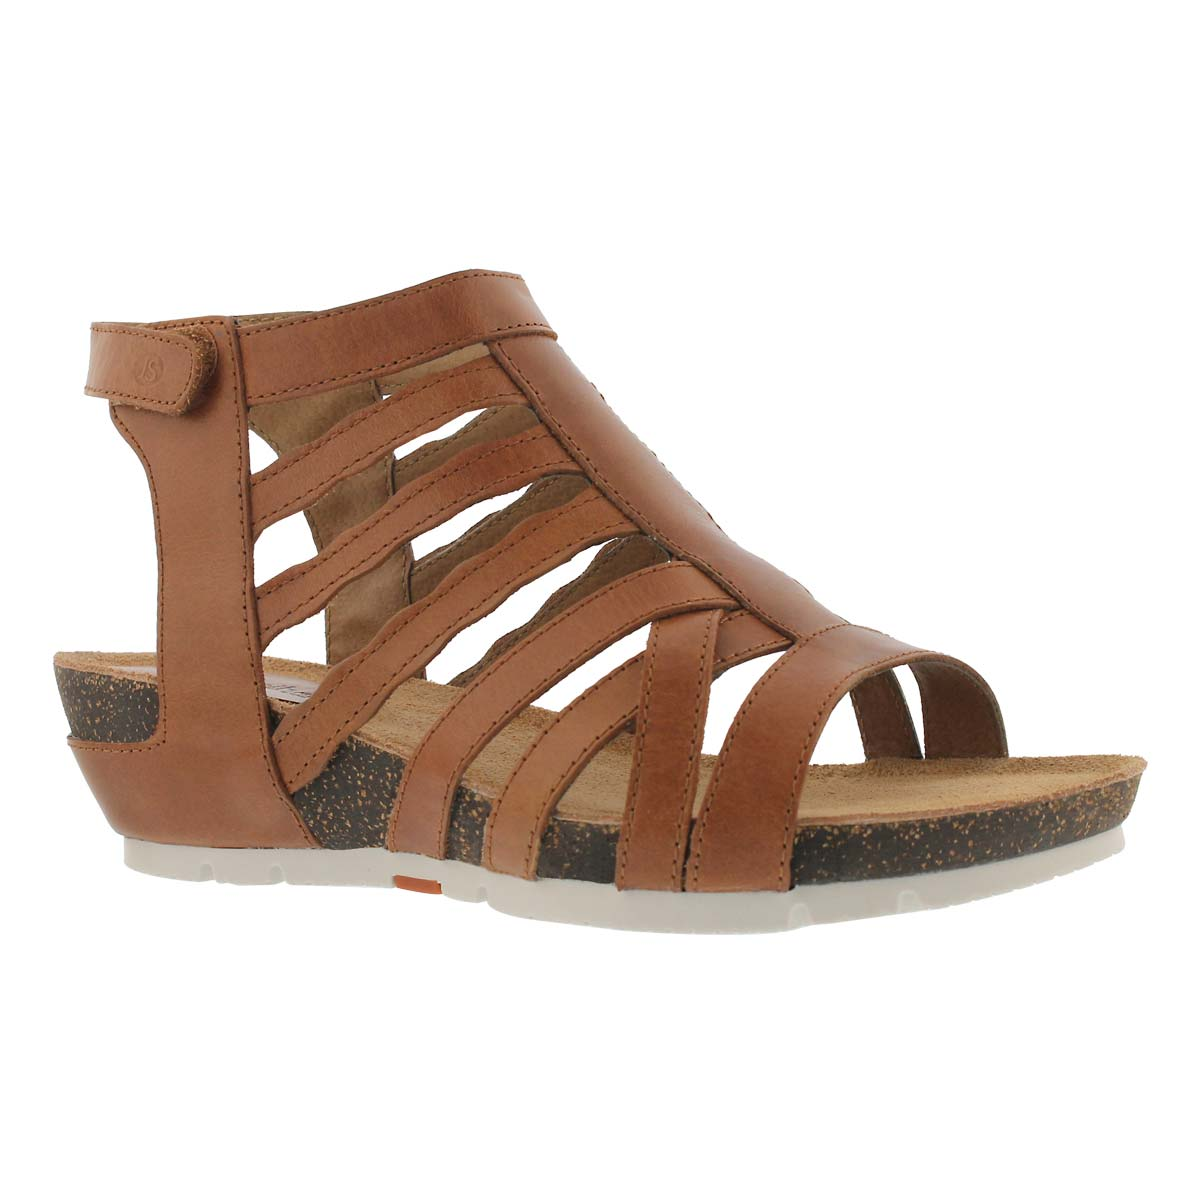 Women's HAILEY 17 camel dress wedge sandal